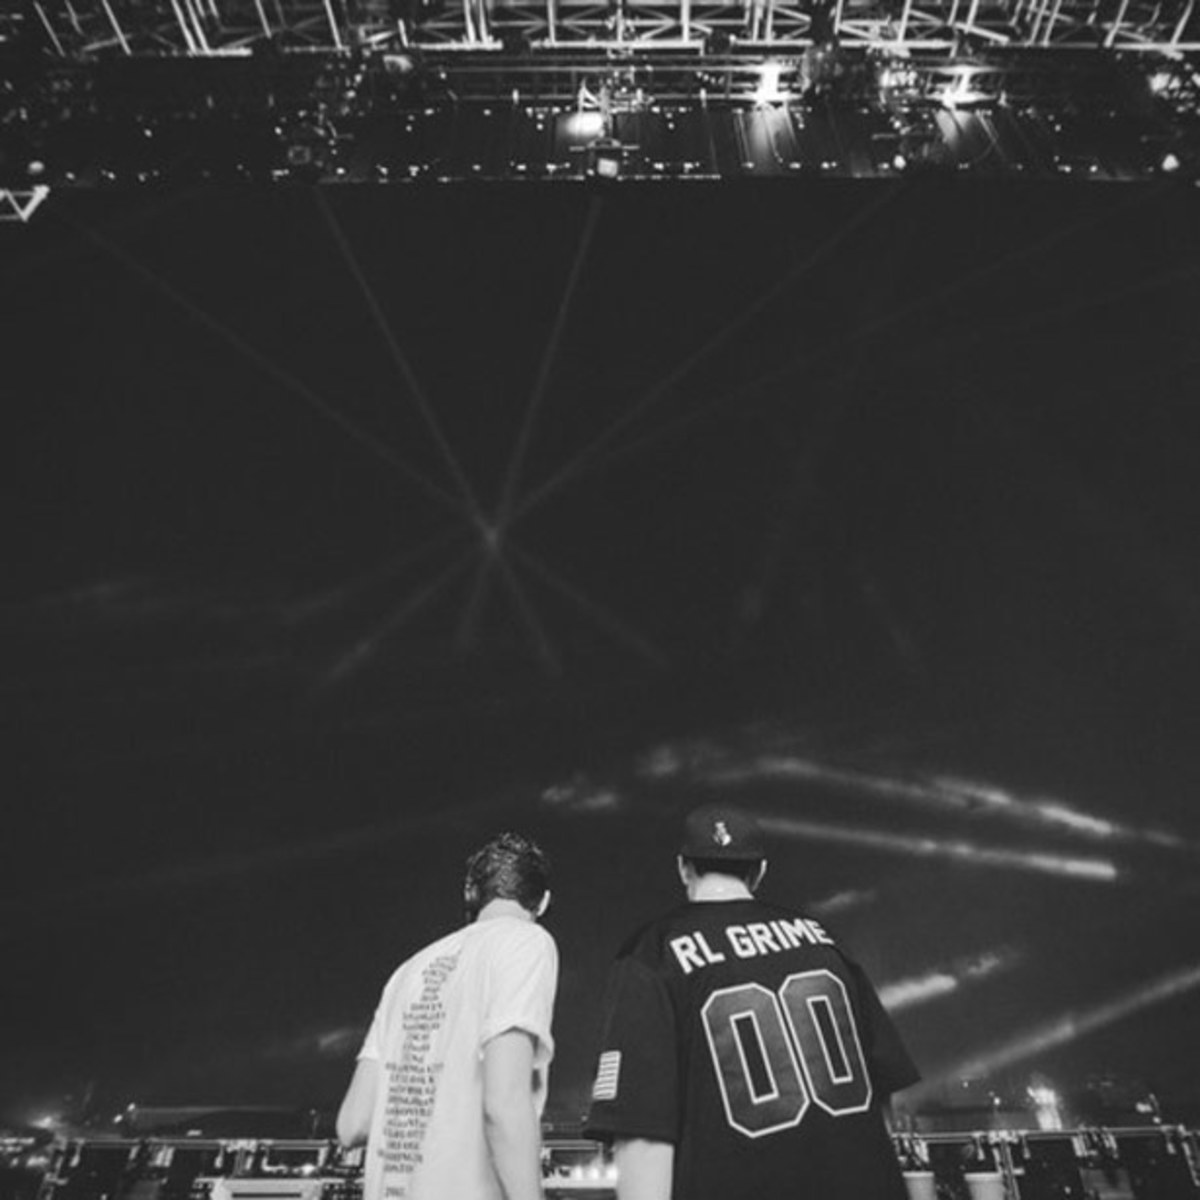 6 'Must Have' Free EDM Downloads From Baauer, RL Grime, Carnage, The Chainsmokers And More